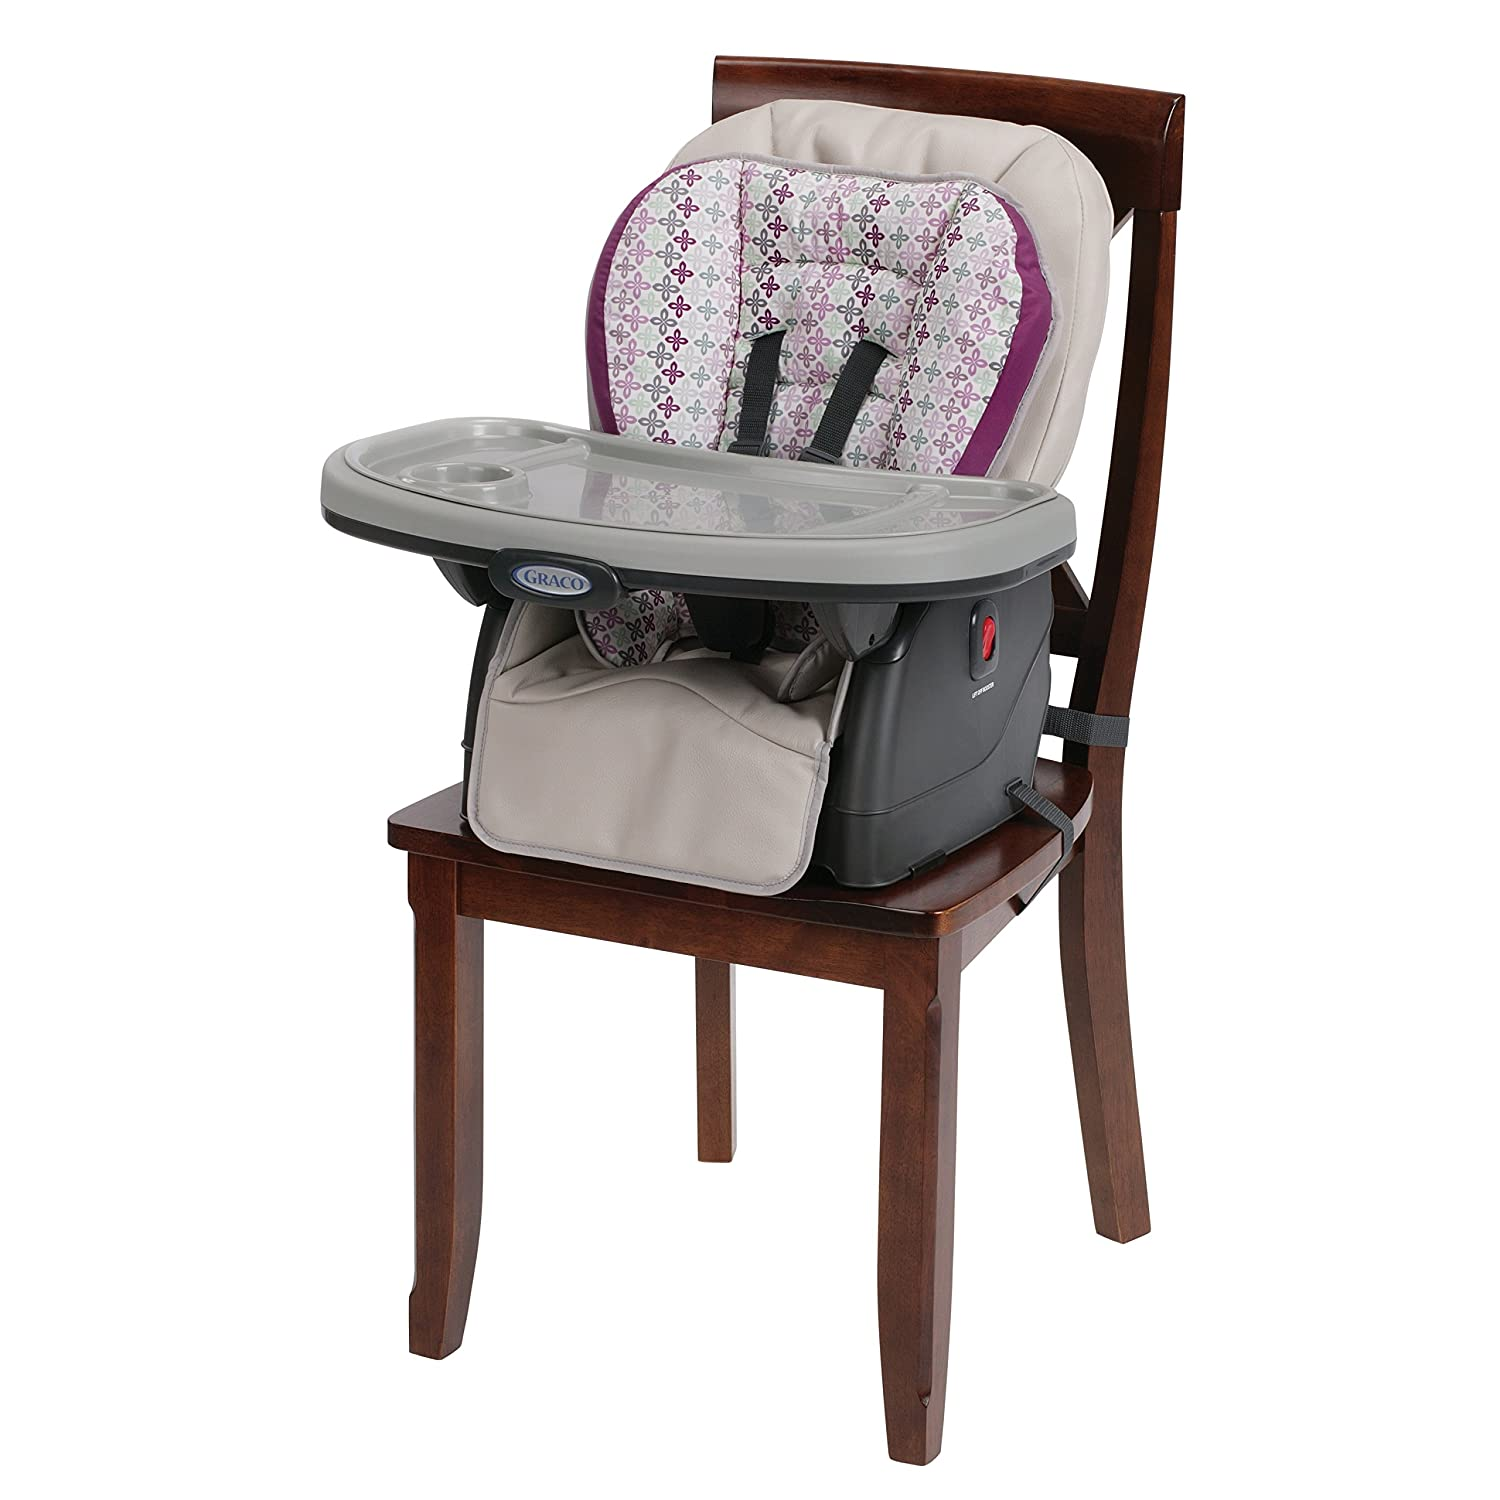 Amazon Graco Blossom 4 in 1 Convertible High Chair Seating